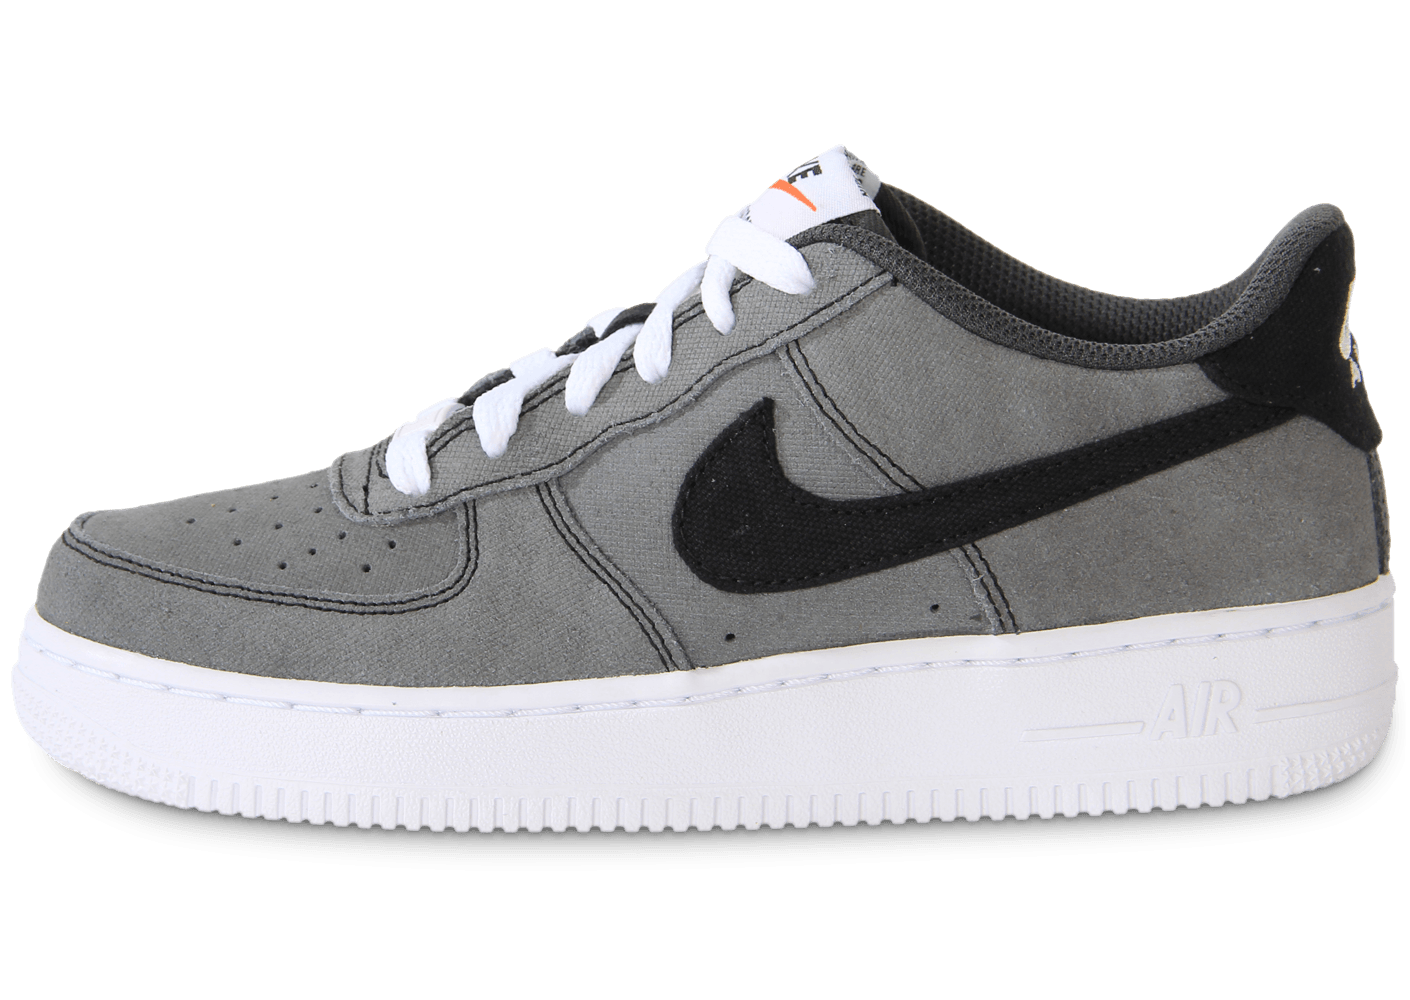 tout neuf 727df f4b55 nike air force 1 grise,chaussures nike air force 1 suede ...